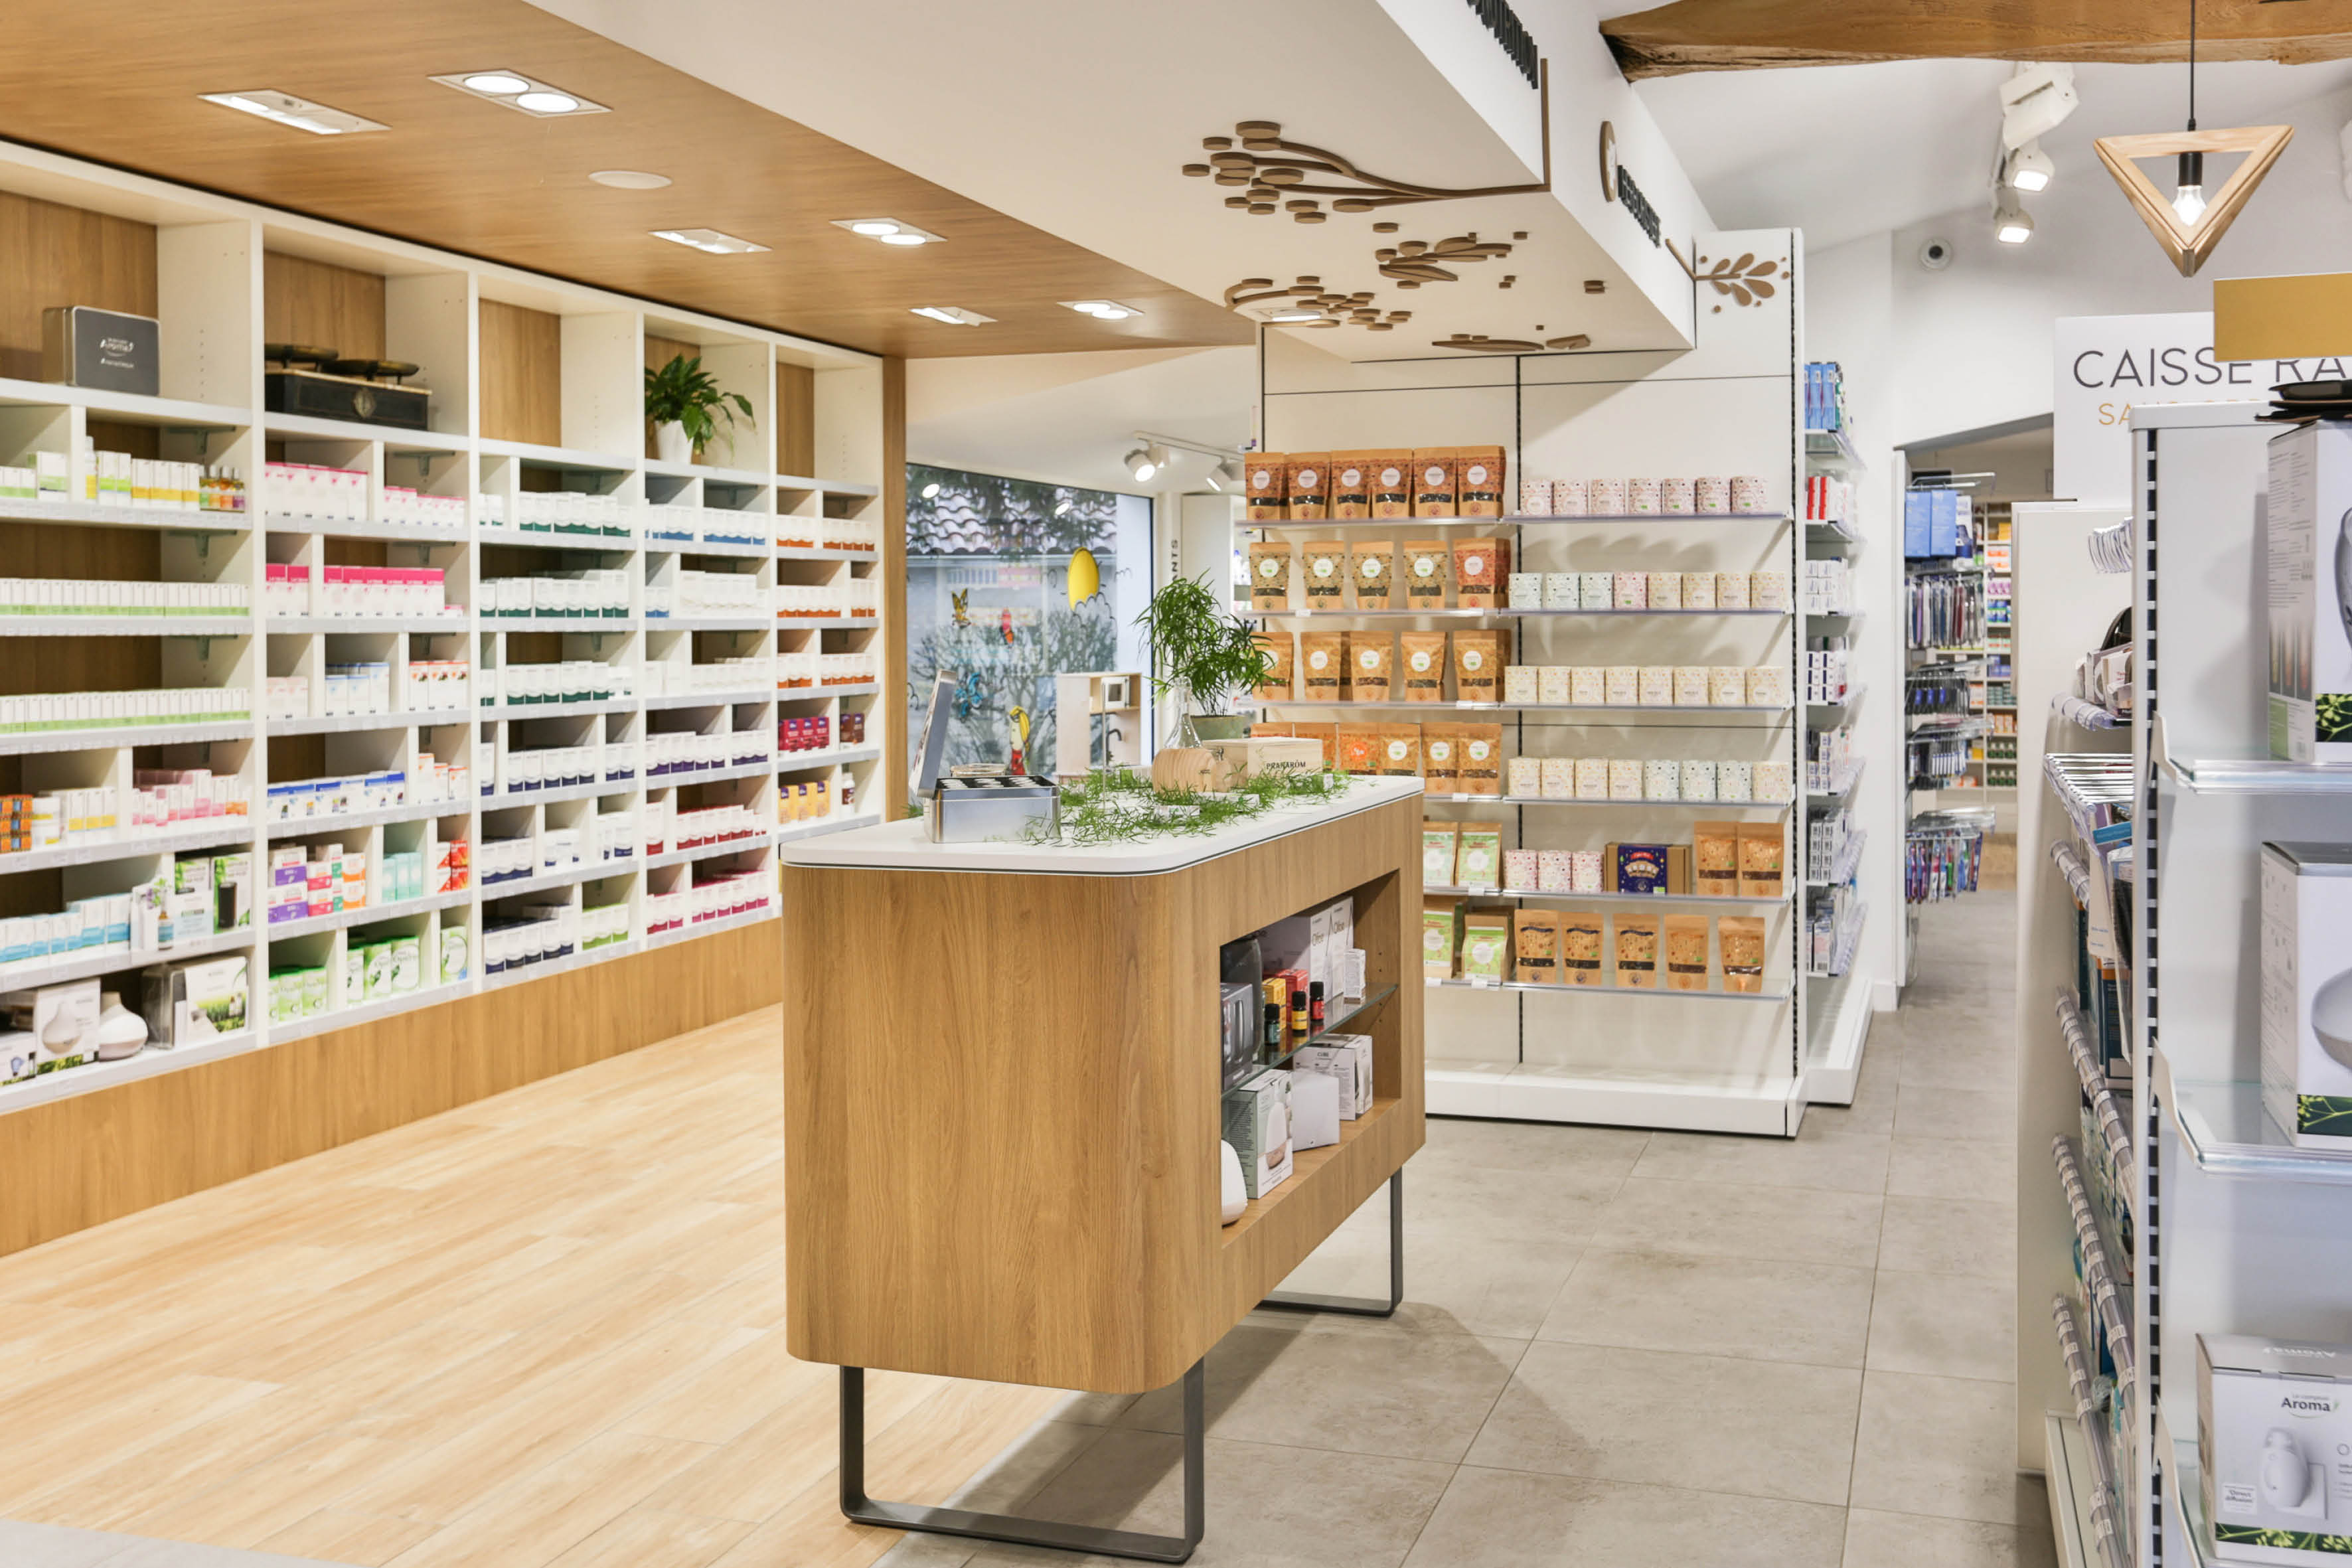 Agencement pharmacie - plus de 50 ans d'expertise Mobil M